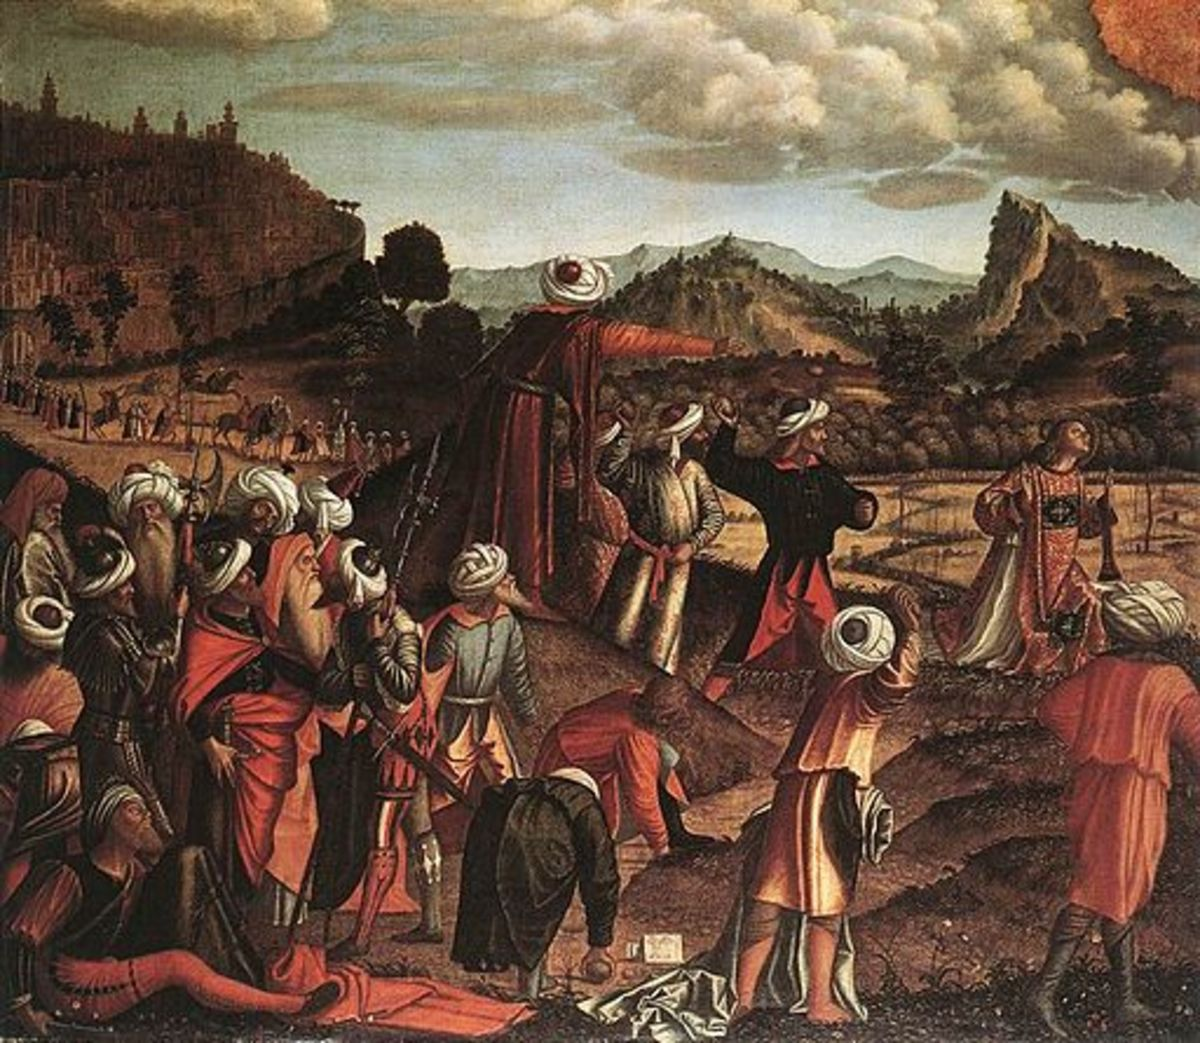 The stoning of Steven: remaining faithful to the Word at all cost